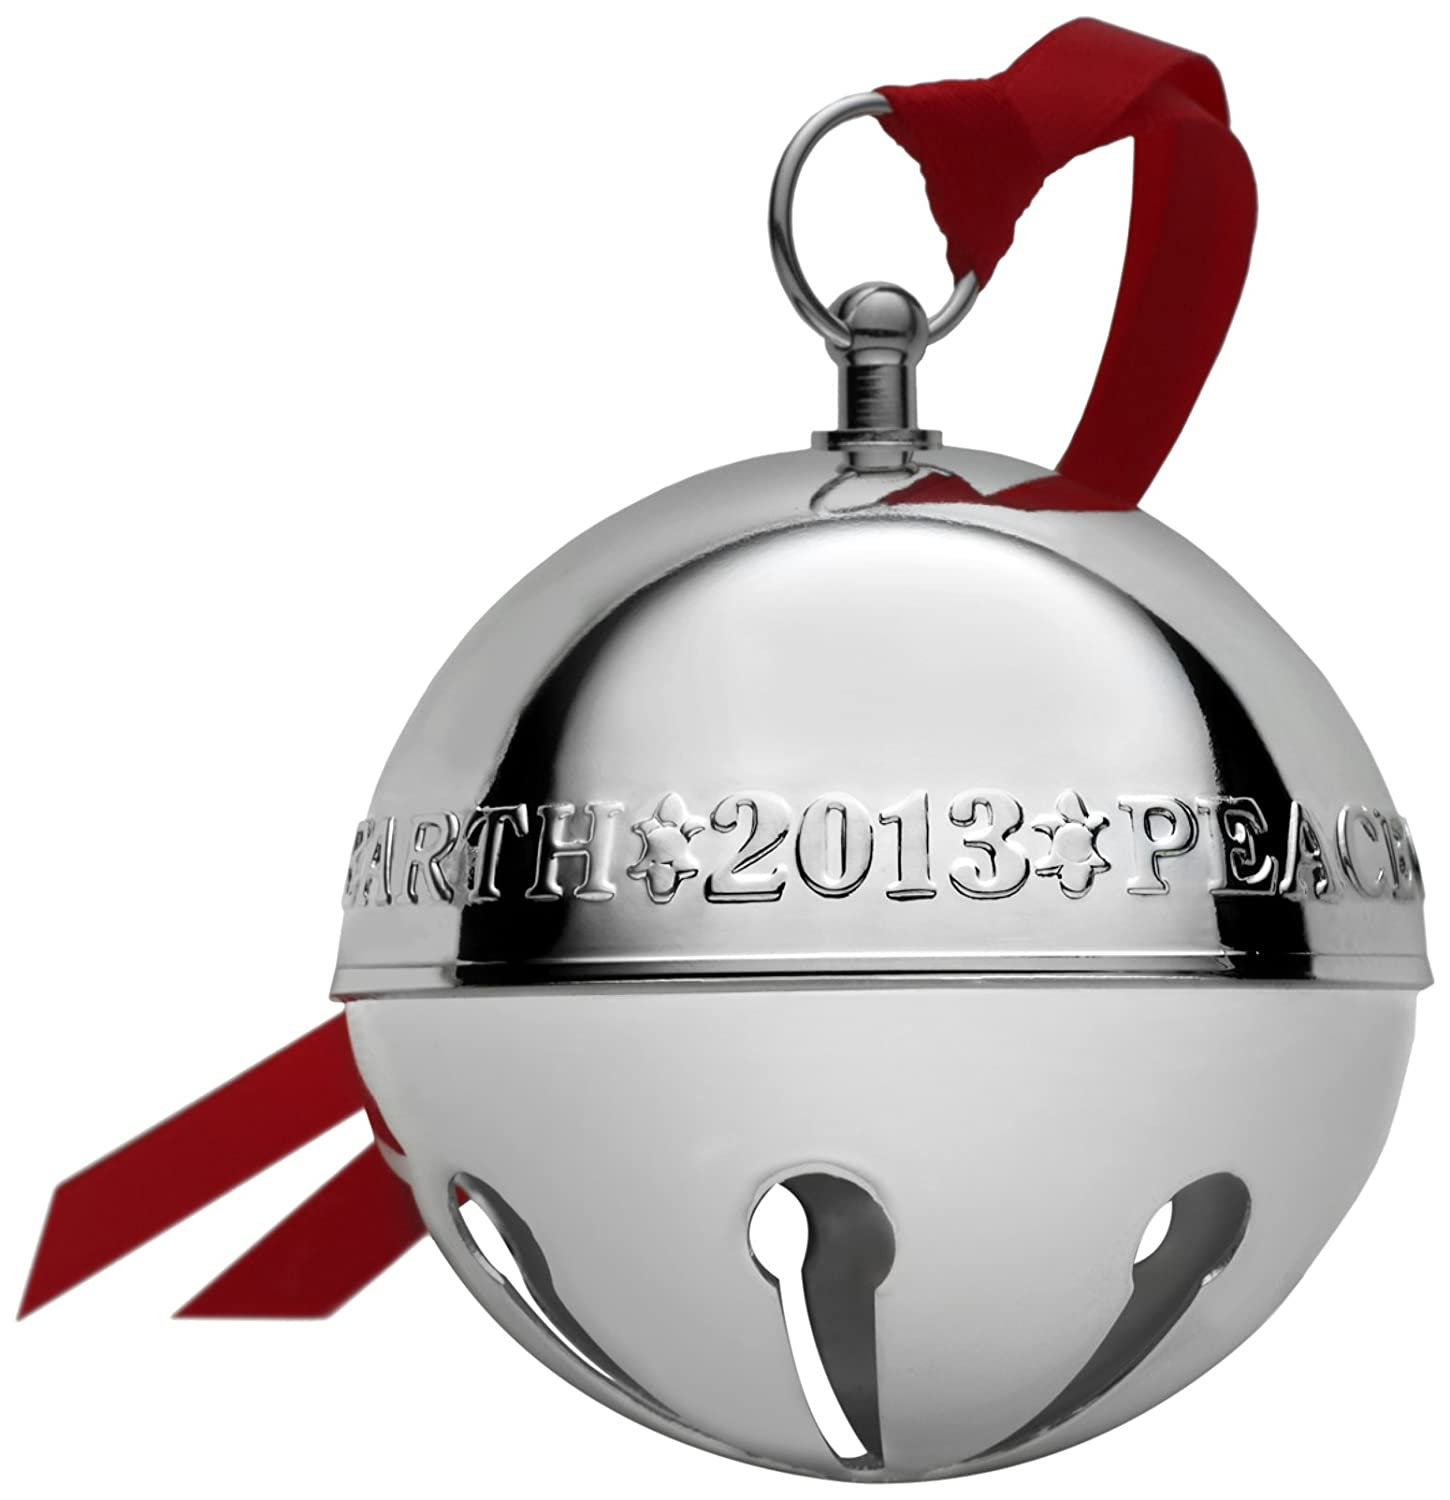 Wallace 2013 43rd Edition Silver-Plated Sleigh Bell Ornament